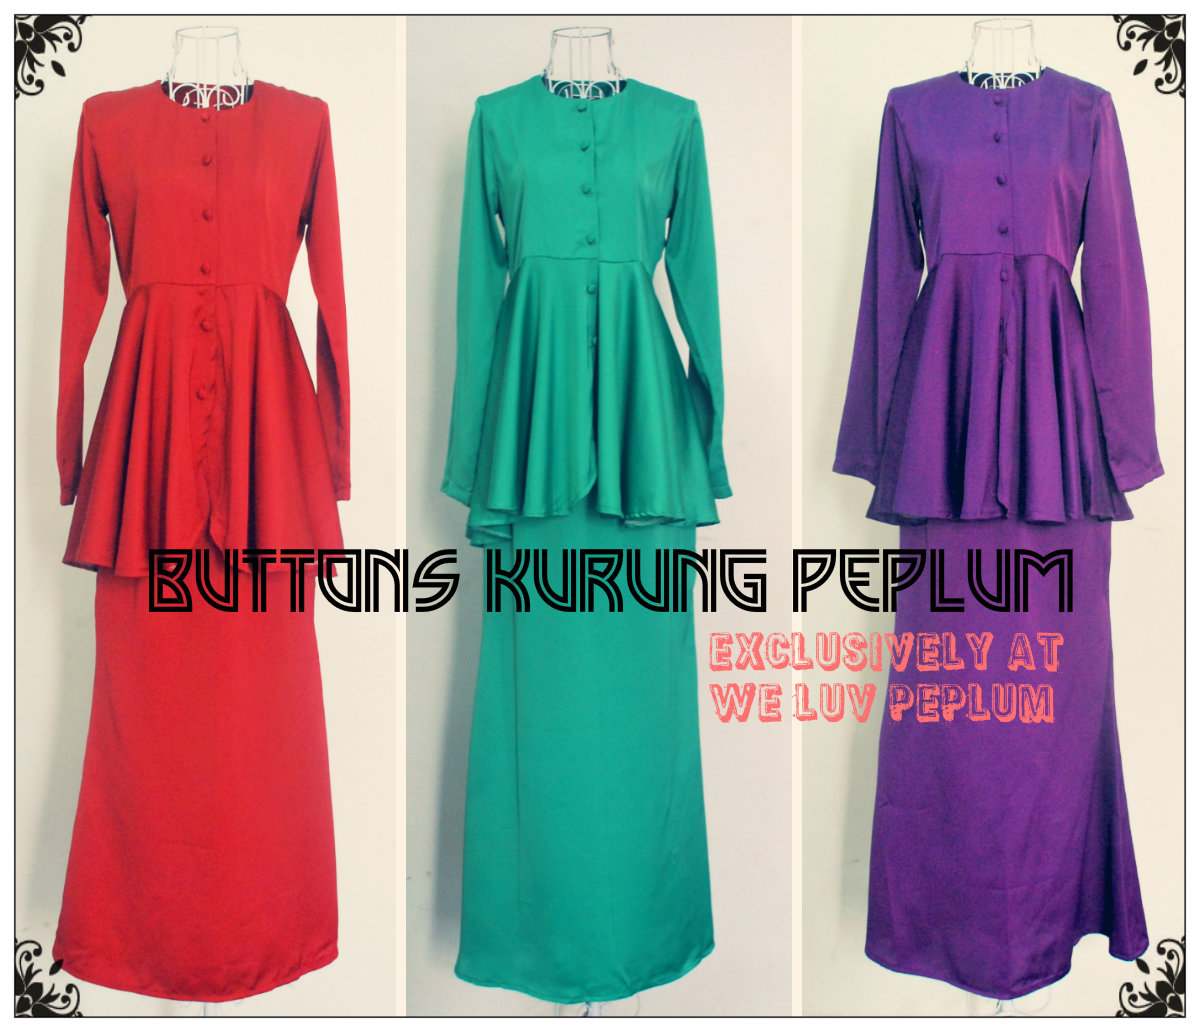 buttons kurung peplum for breastfeeding mother